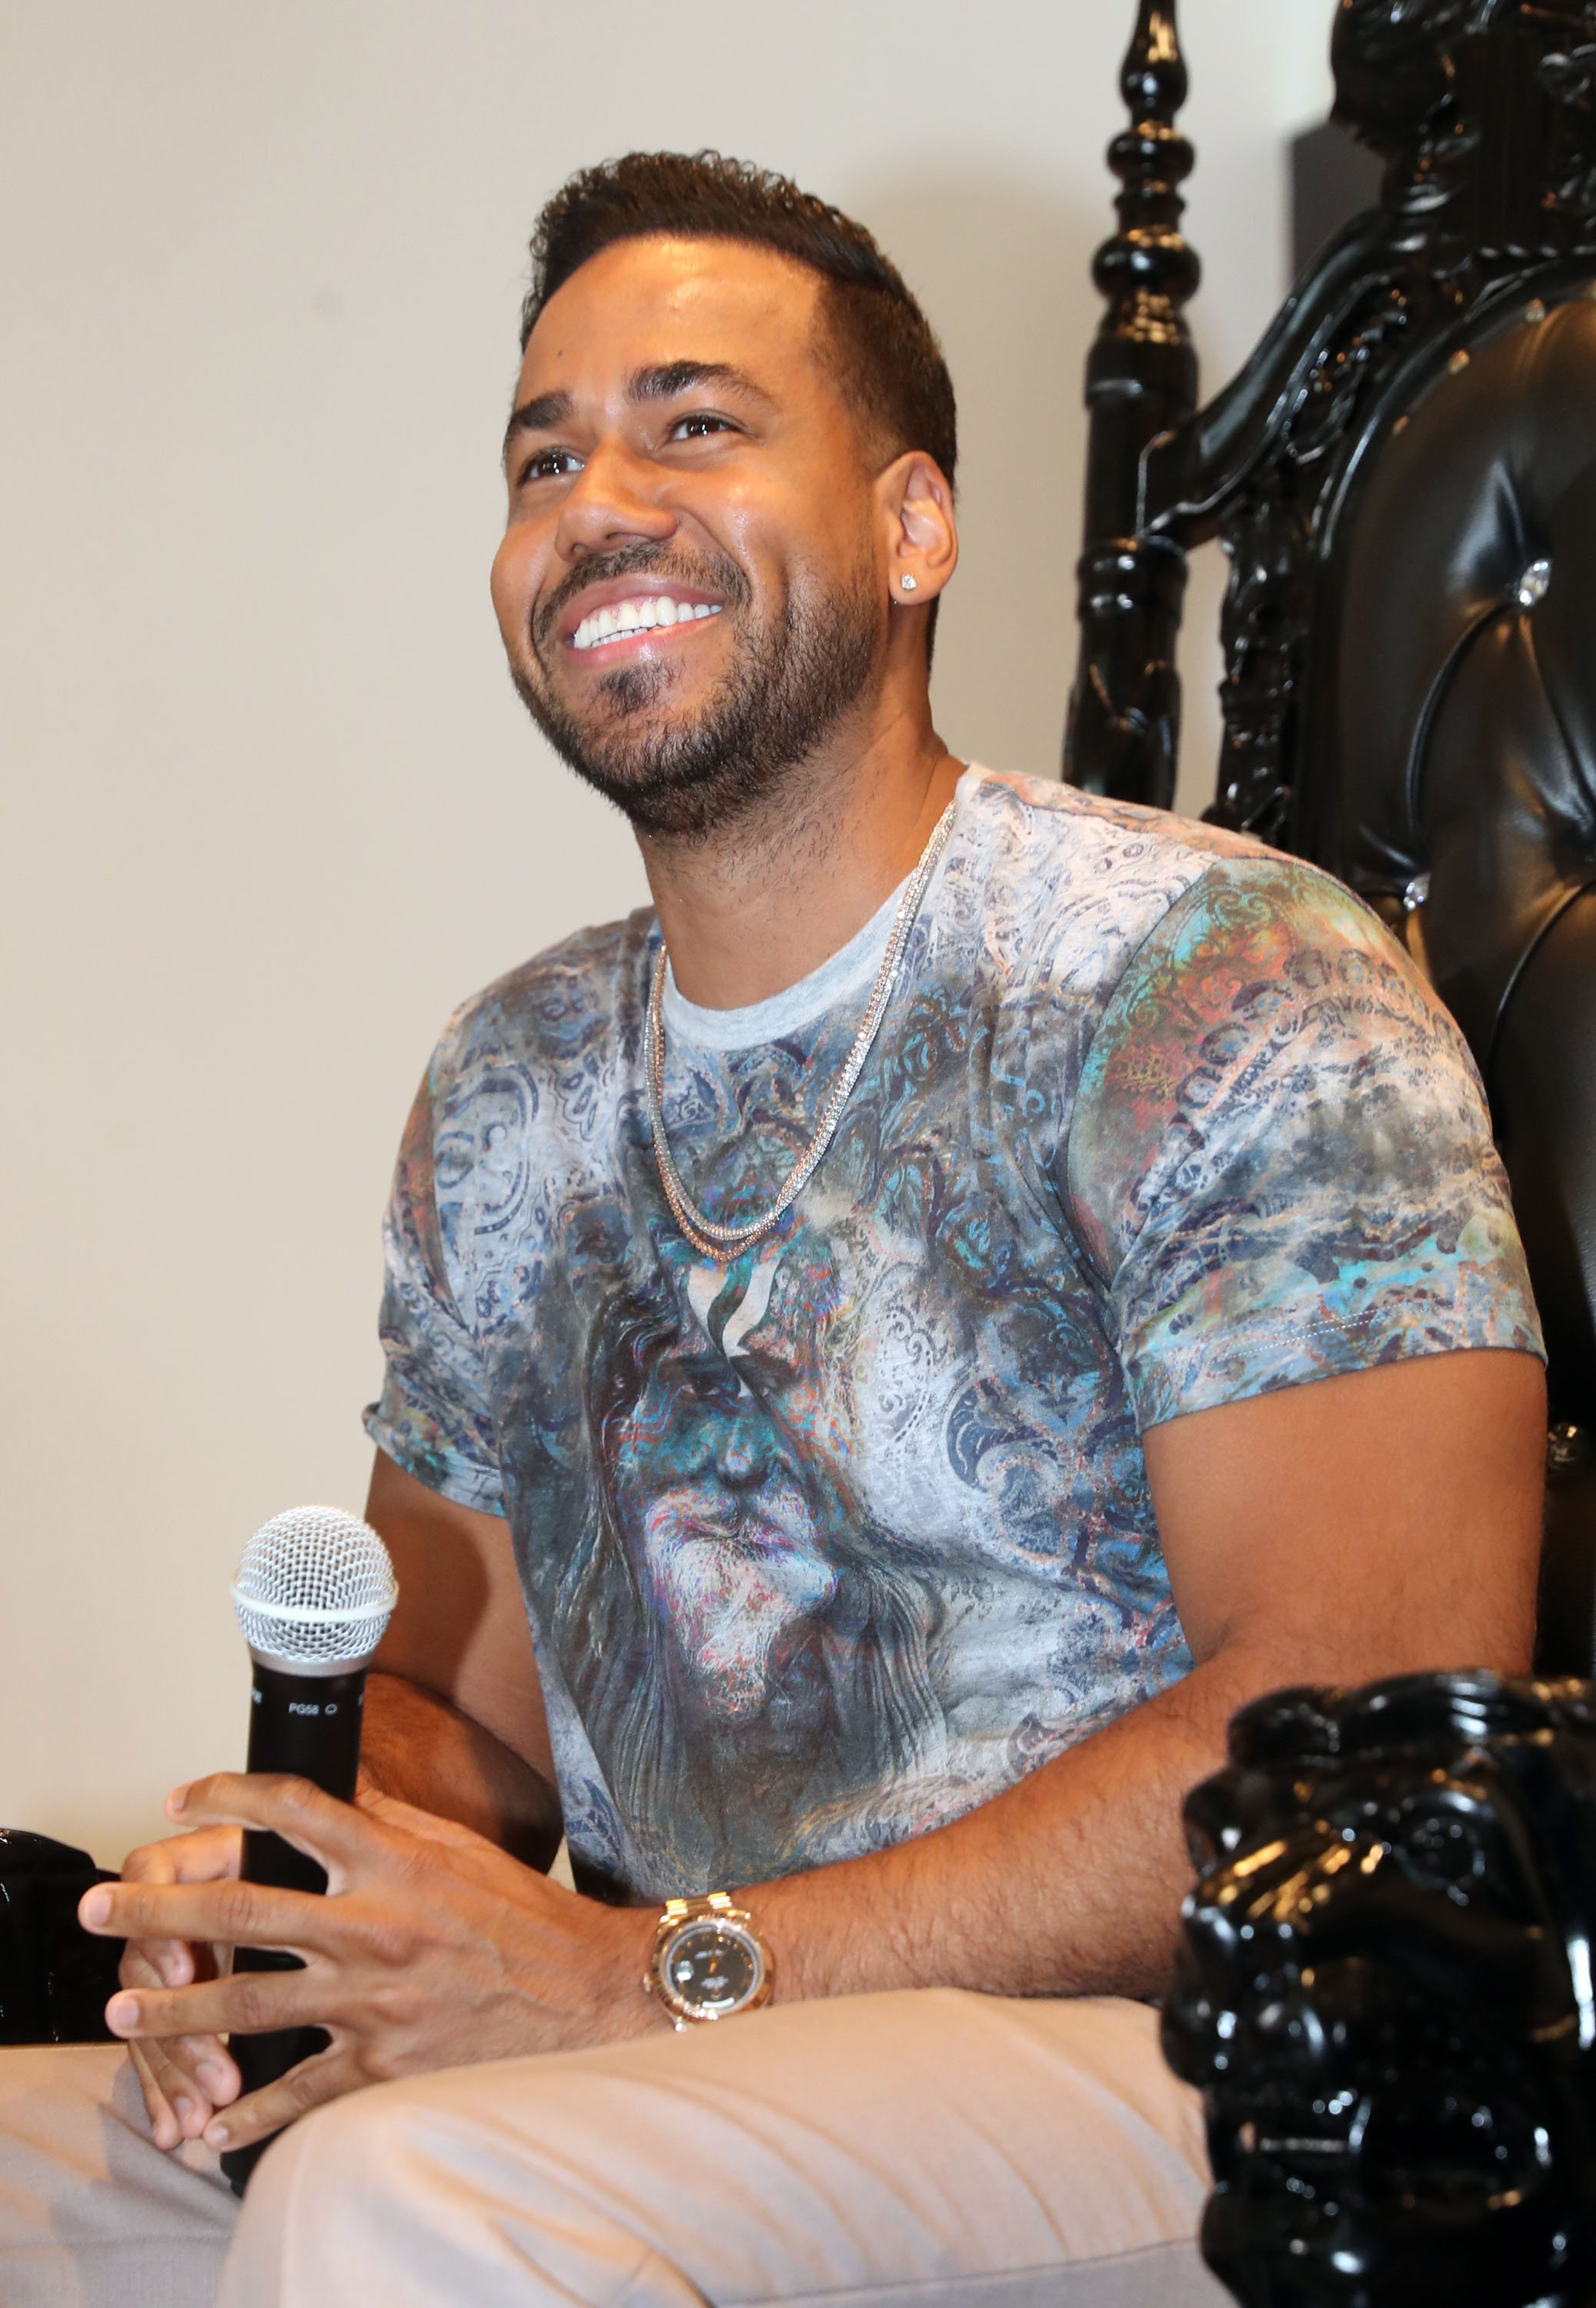 Romeo Santos just made history as the first Latin artist to headline MetLife Stadium